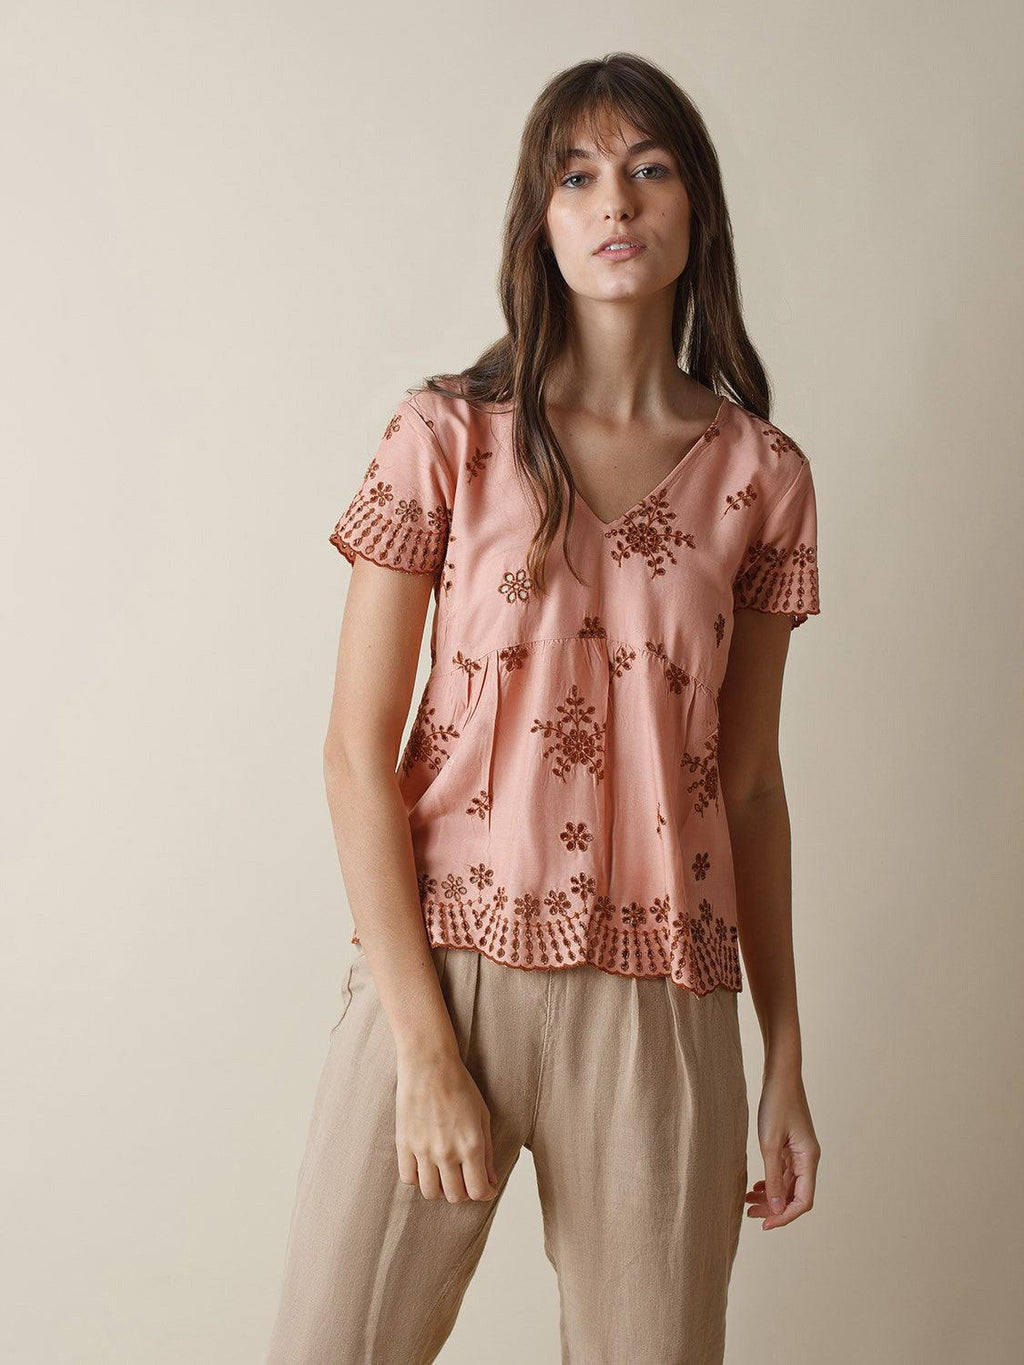 Indi & Cold short sleeve top